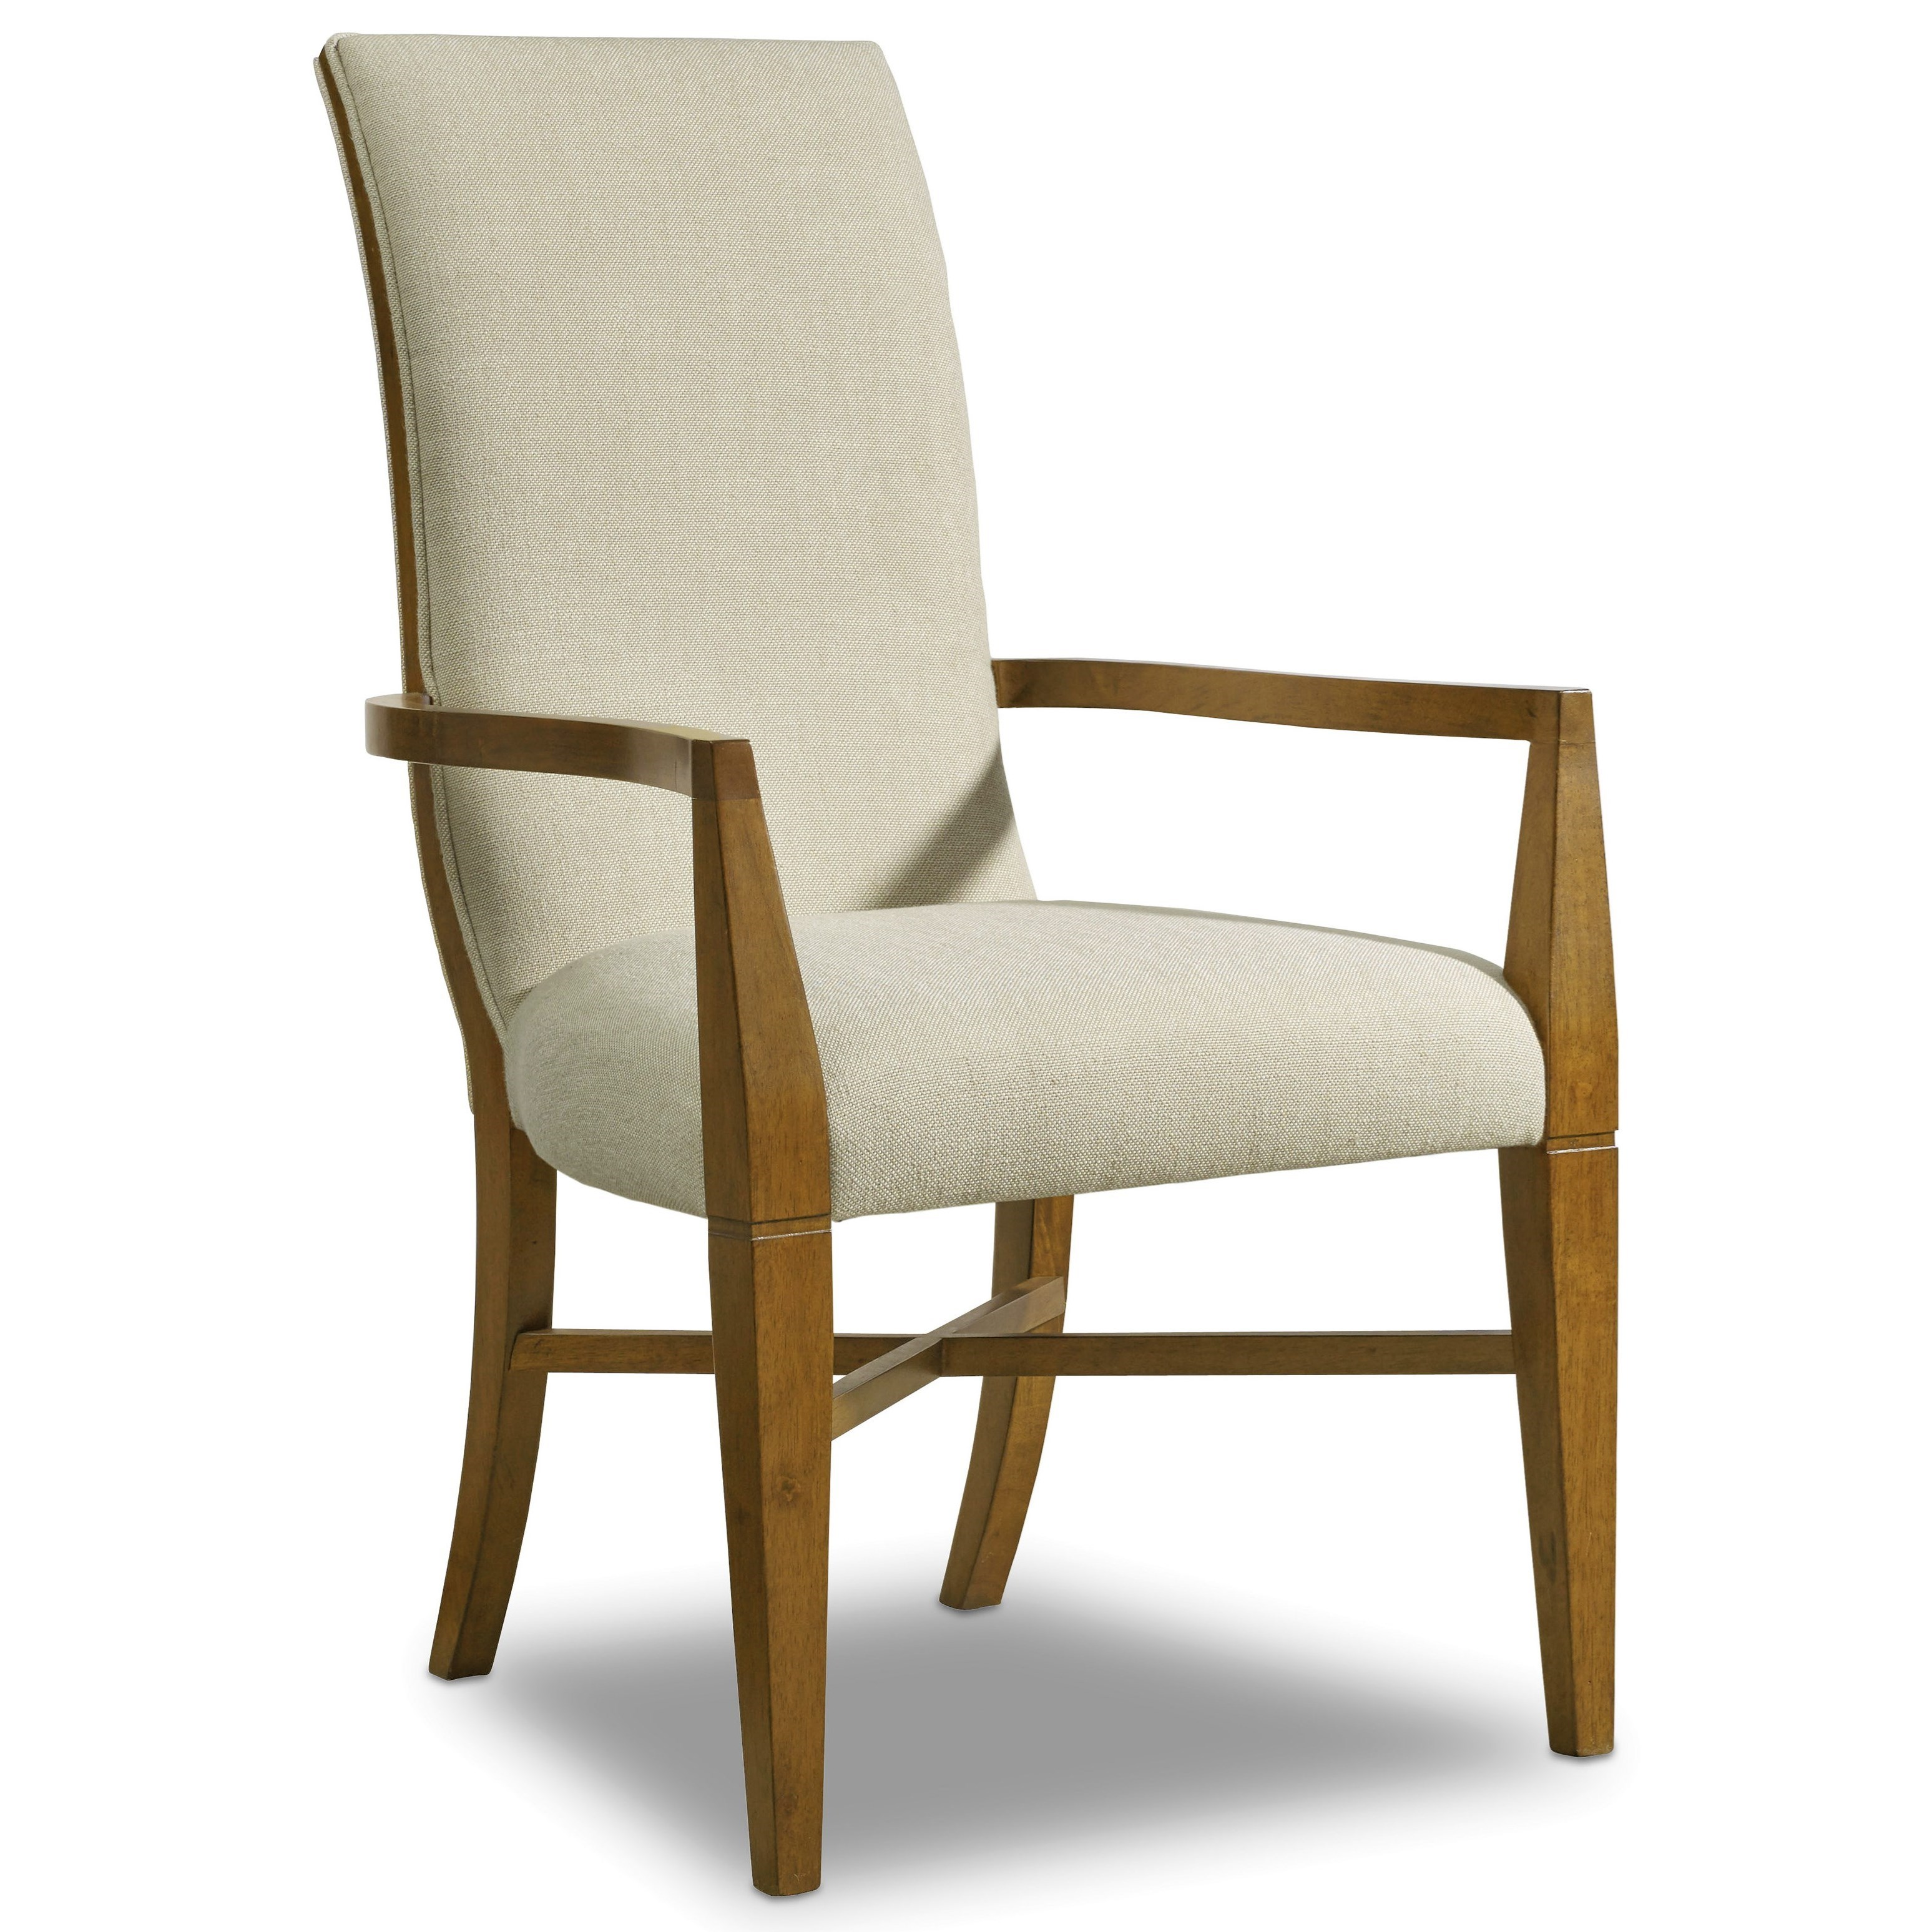 Hooker furniture retropolitan upholstered arm chair with for Arm of chair